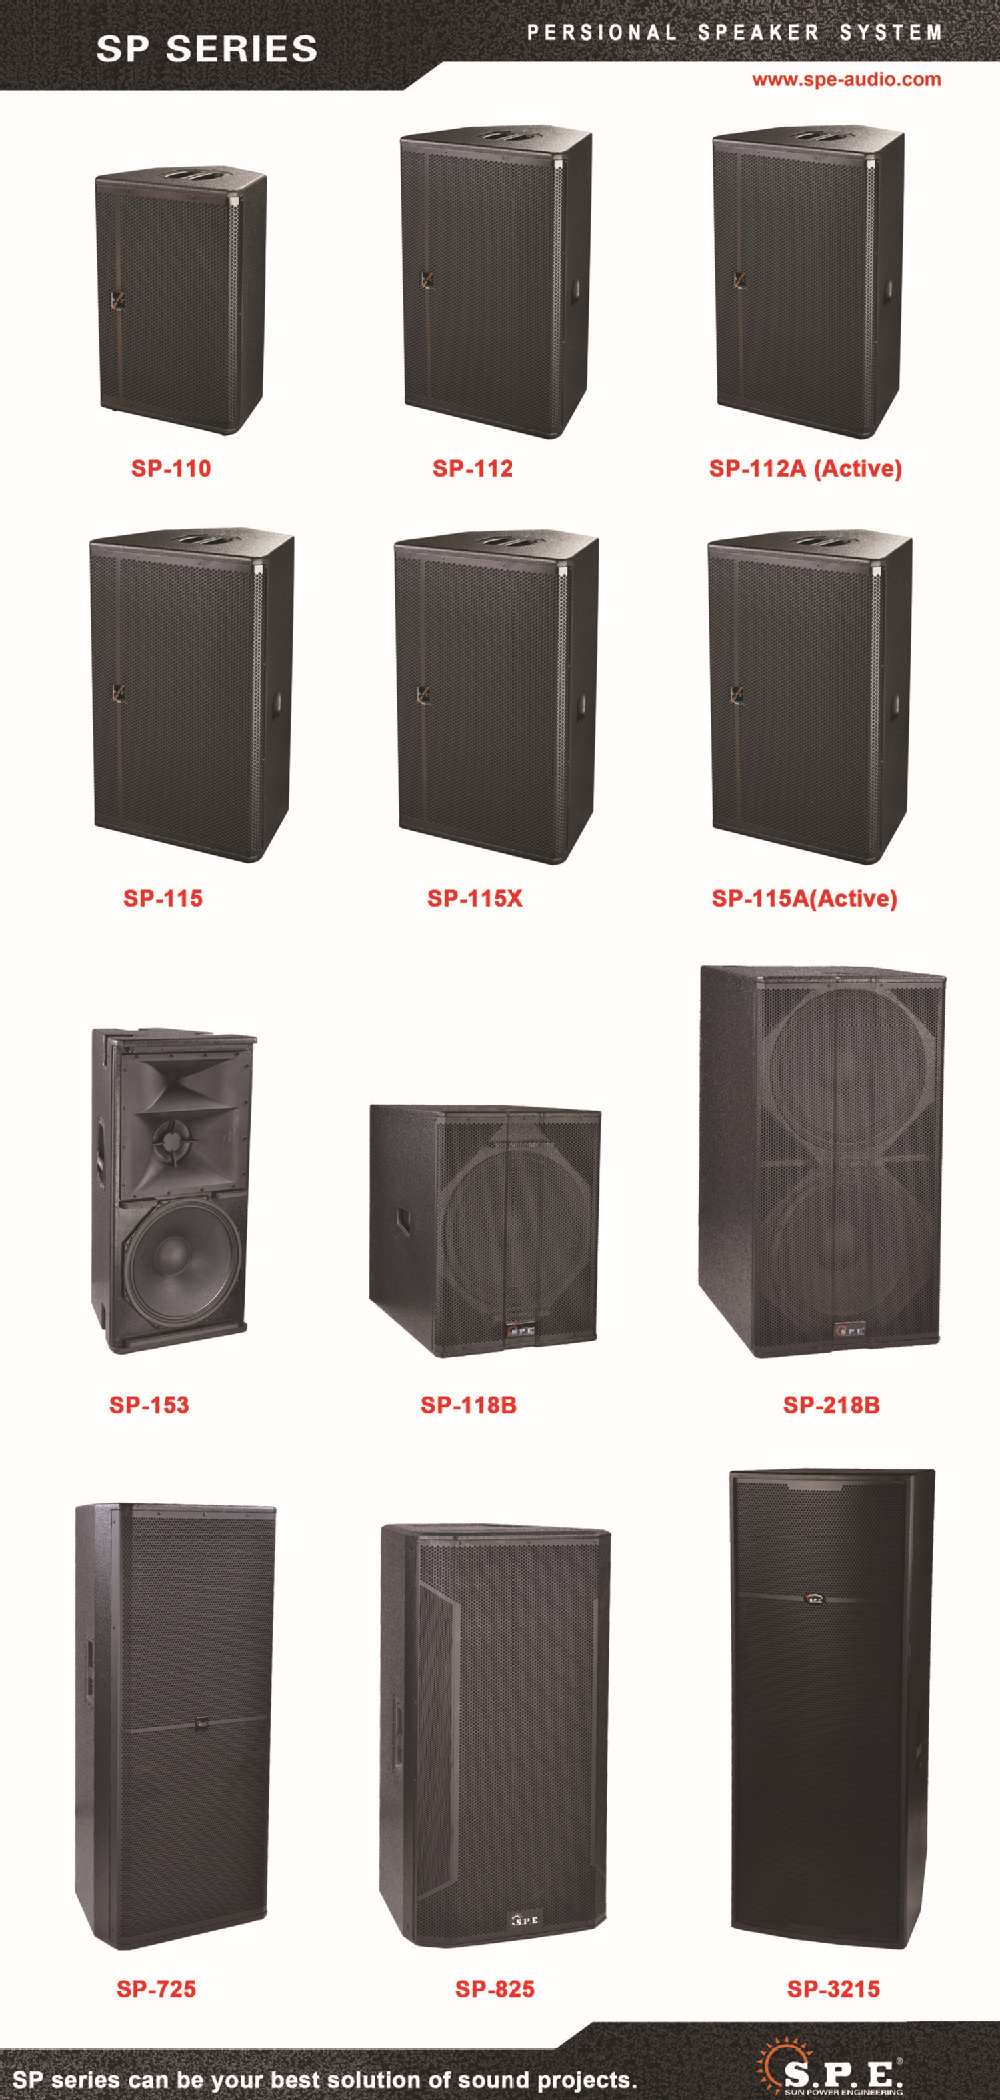 SPE Audio 1600W RMS Powered Dual 18 inch Subwoofer Box SP-218B